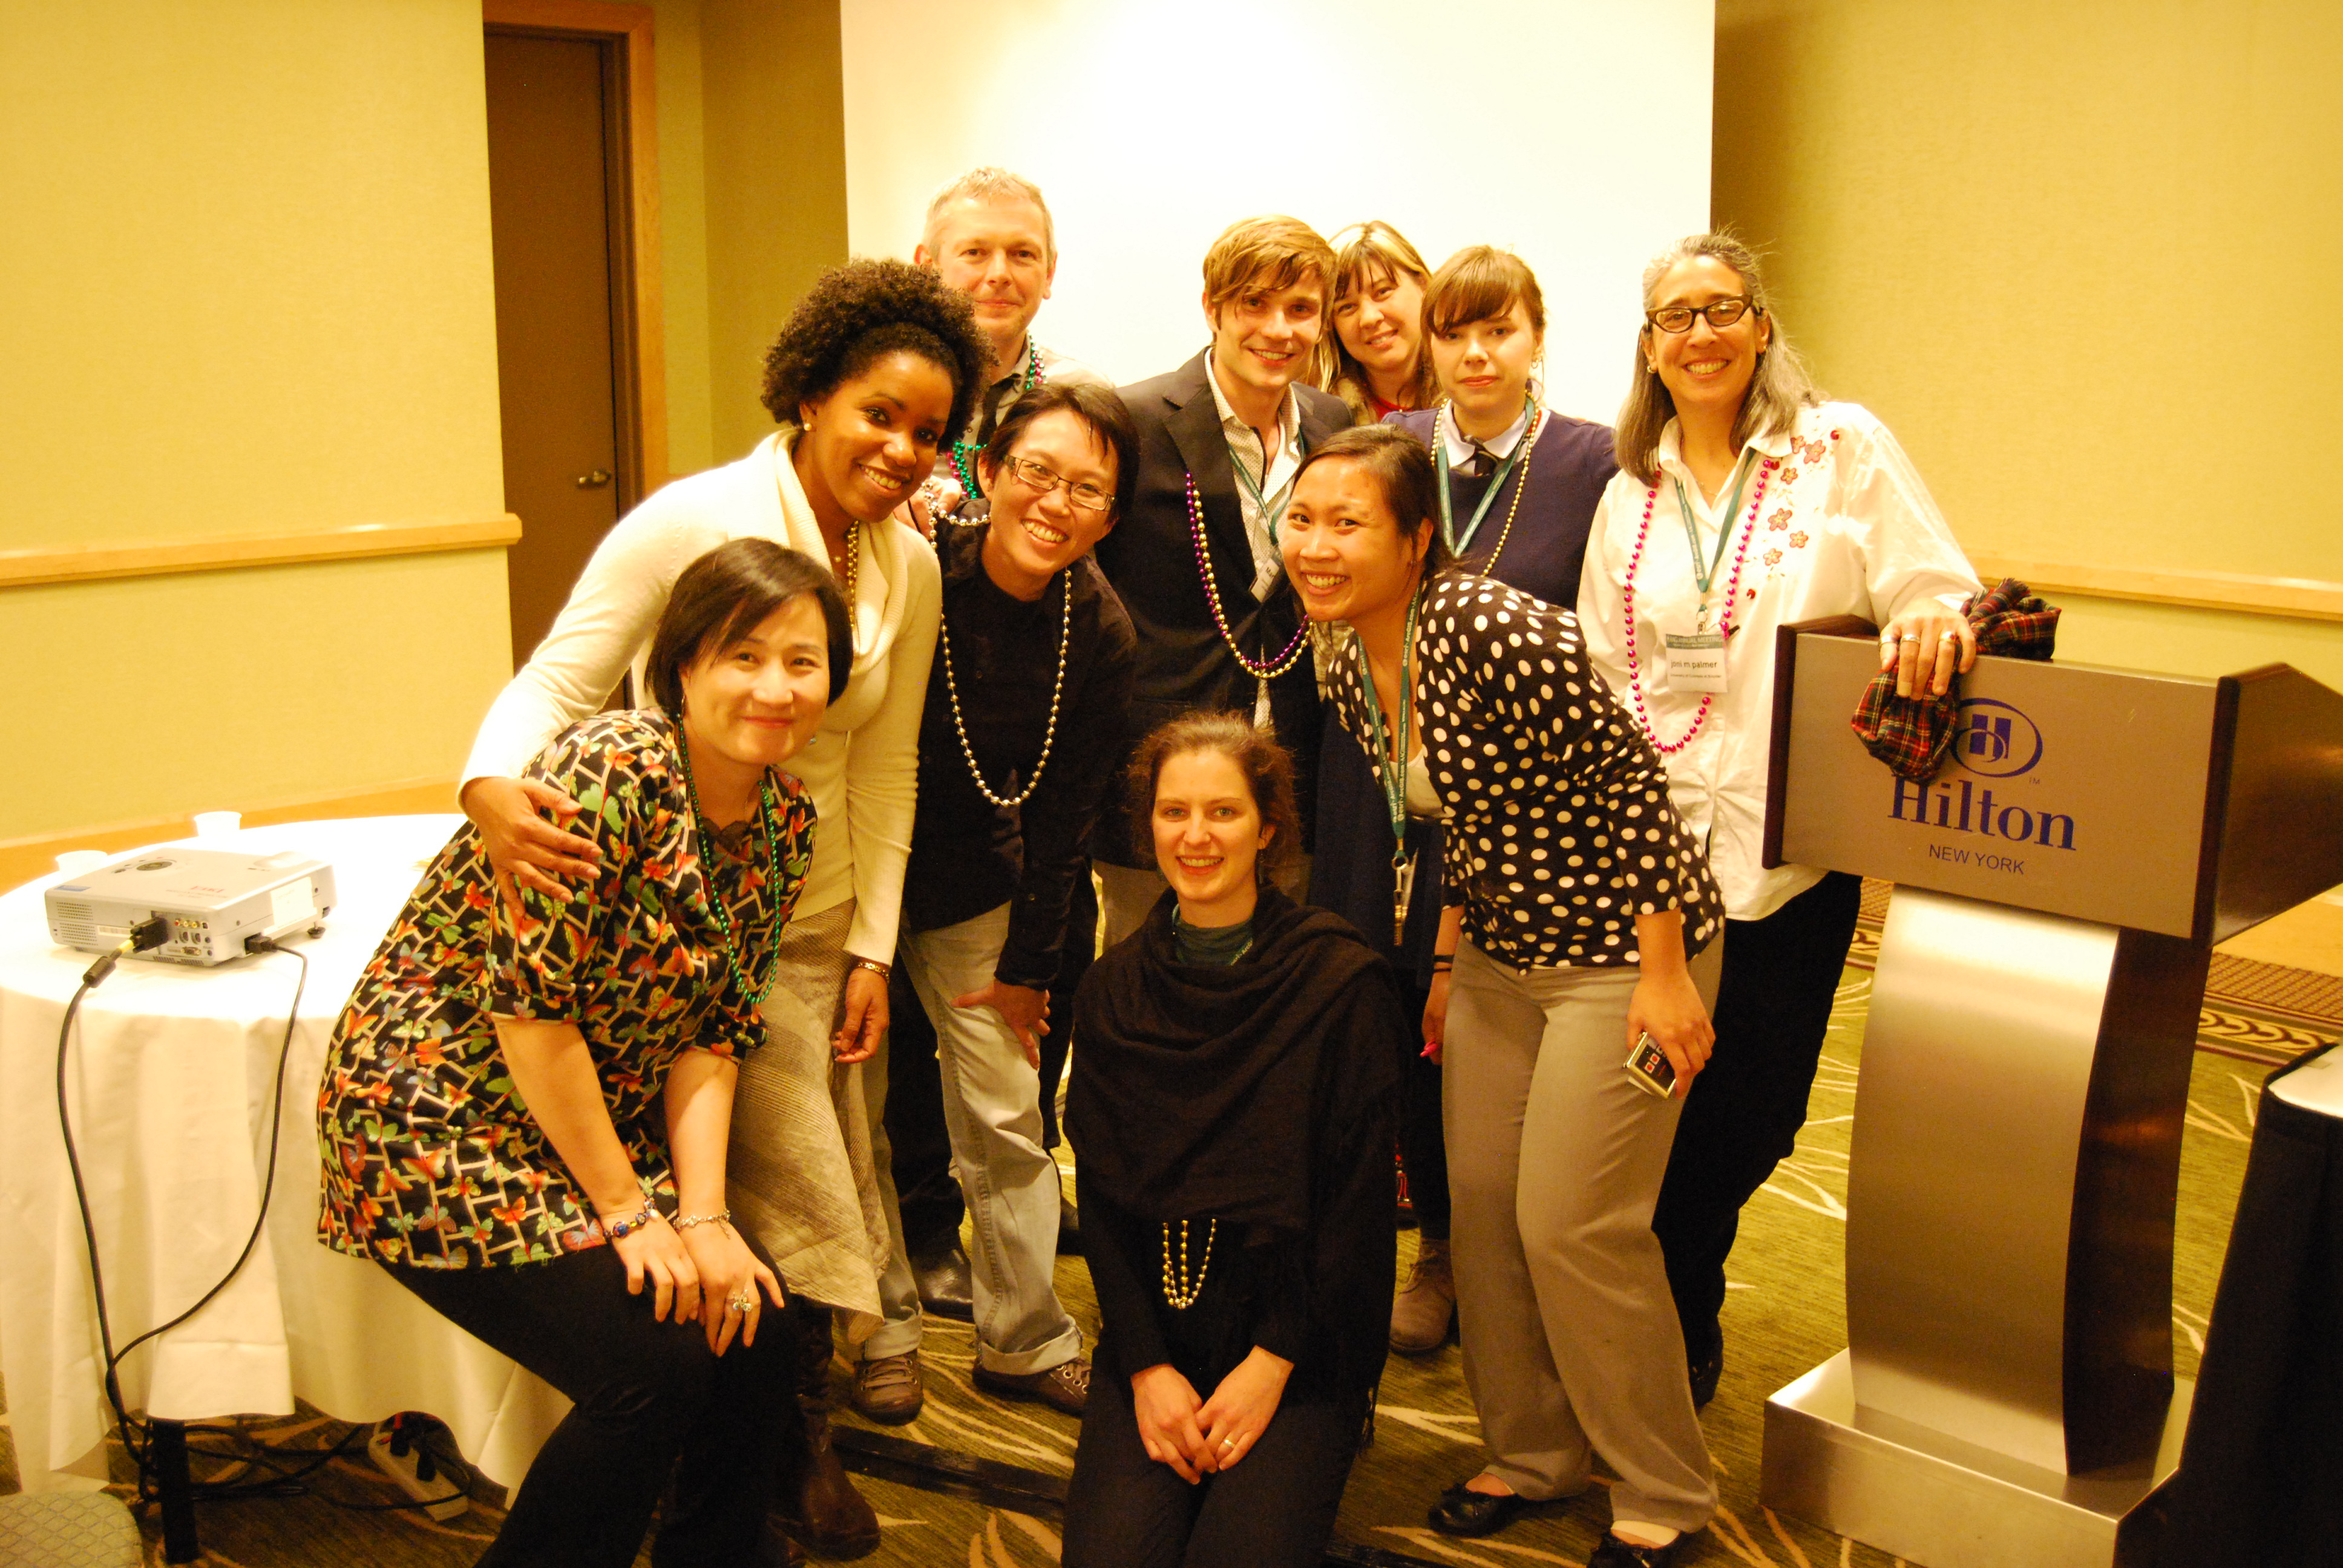 Contributors to Spacing the Arts, Annual Meeting of the Association of American Geographers, New York, 2012